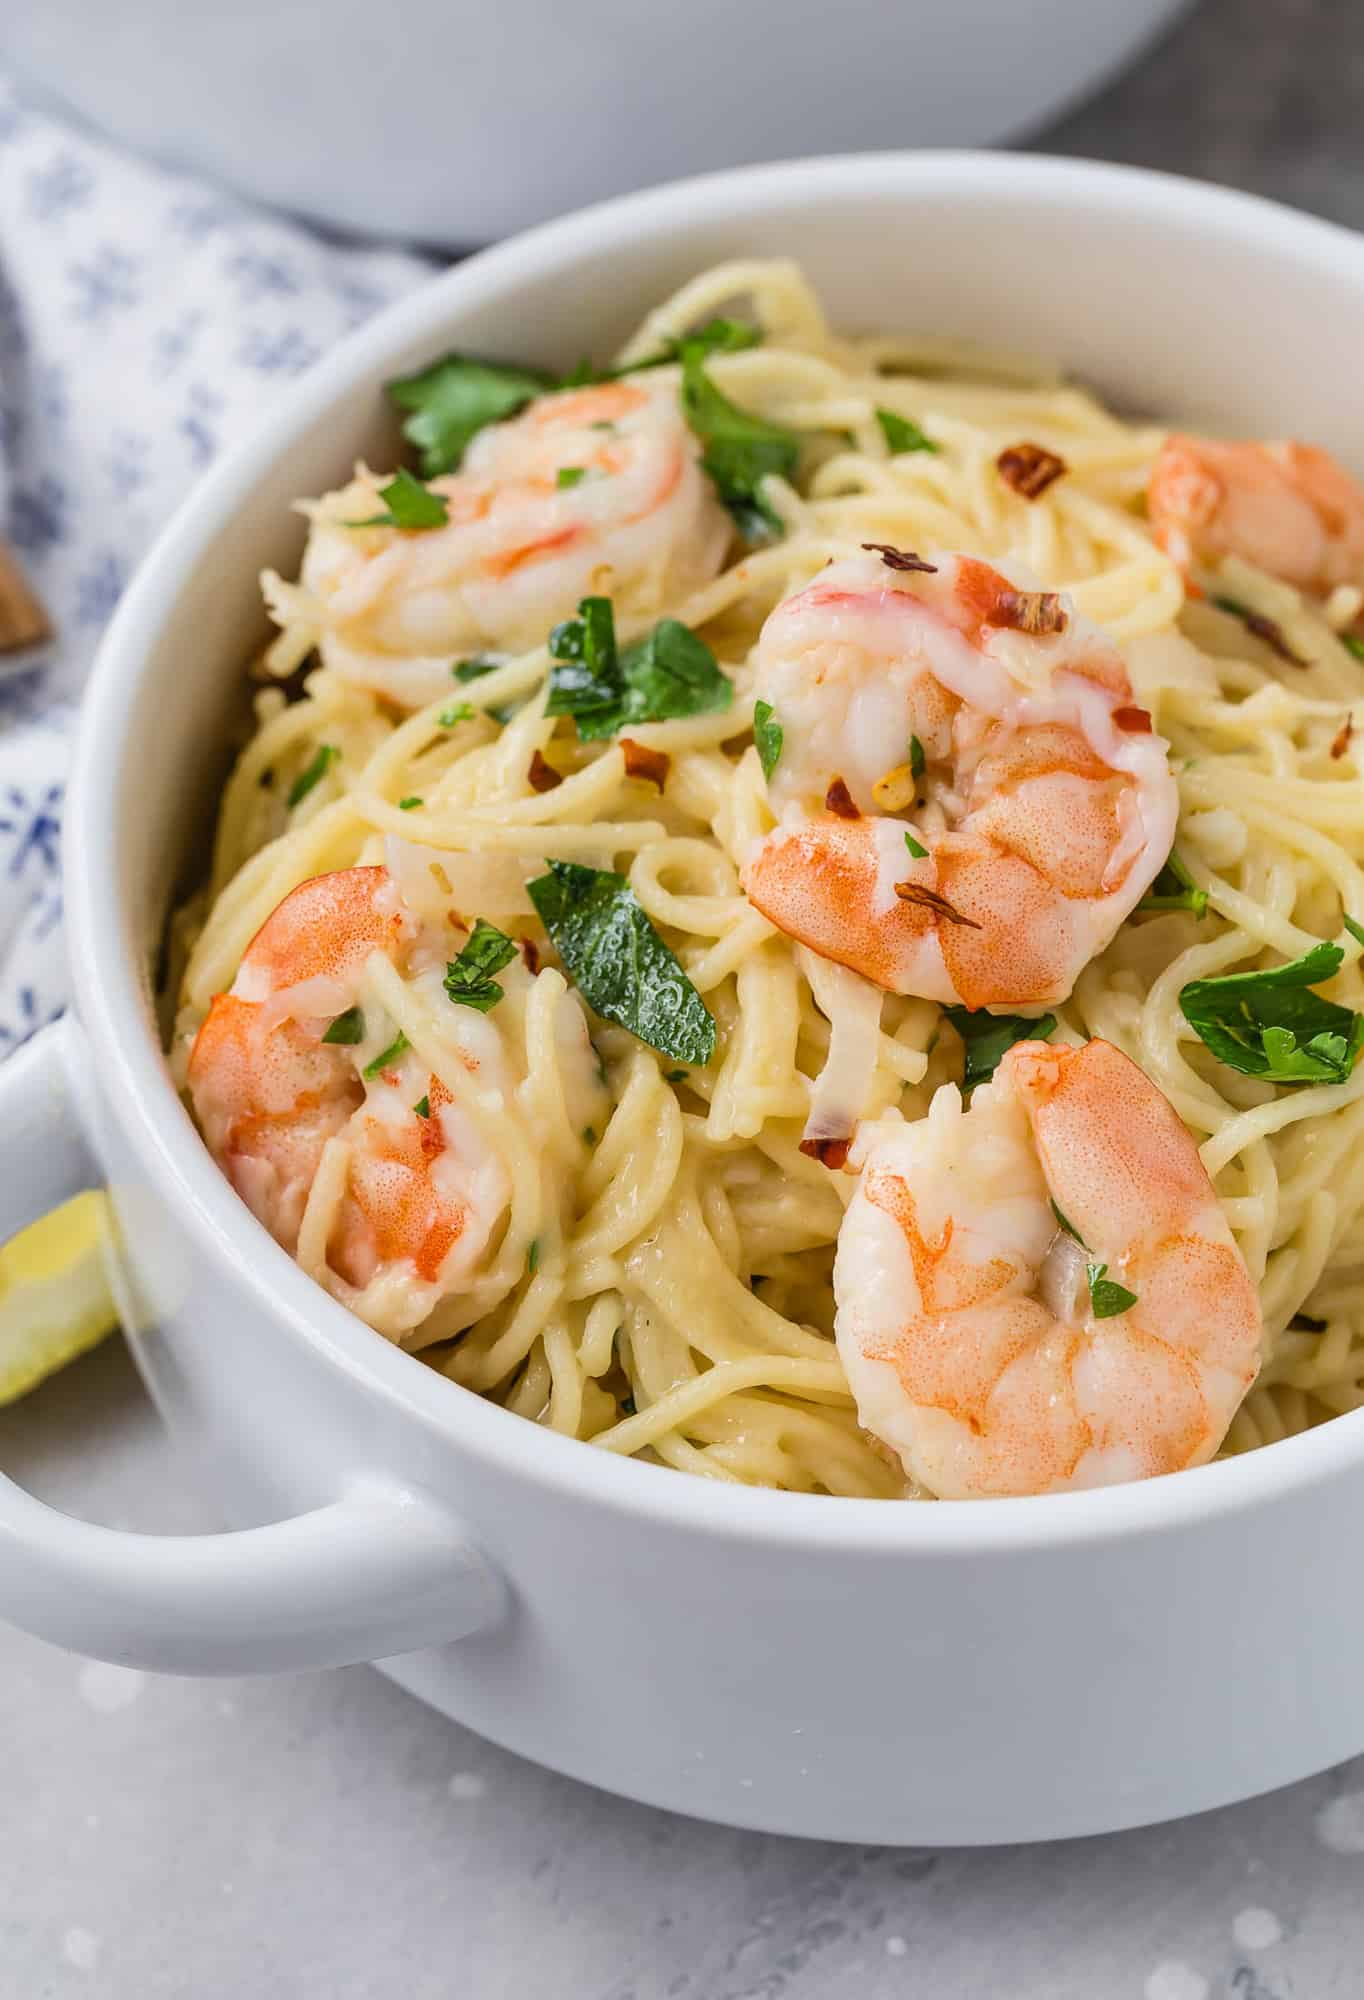 Shrimp scampi pasta in a white two-handled bowl.